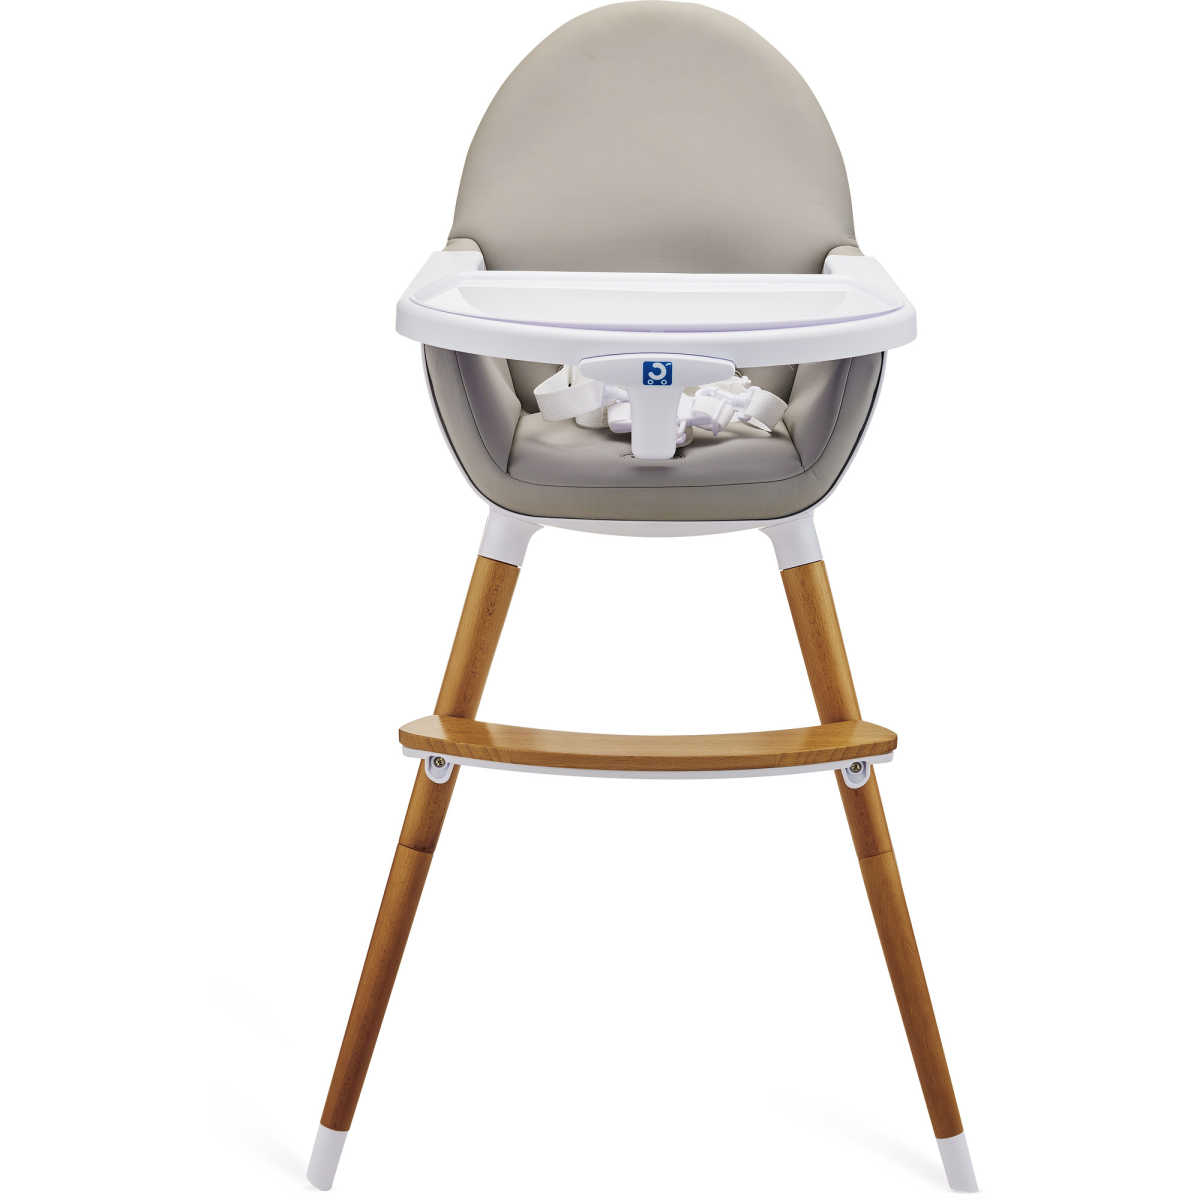 High Chair Thdr Childcare the Pod High Chair Big W